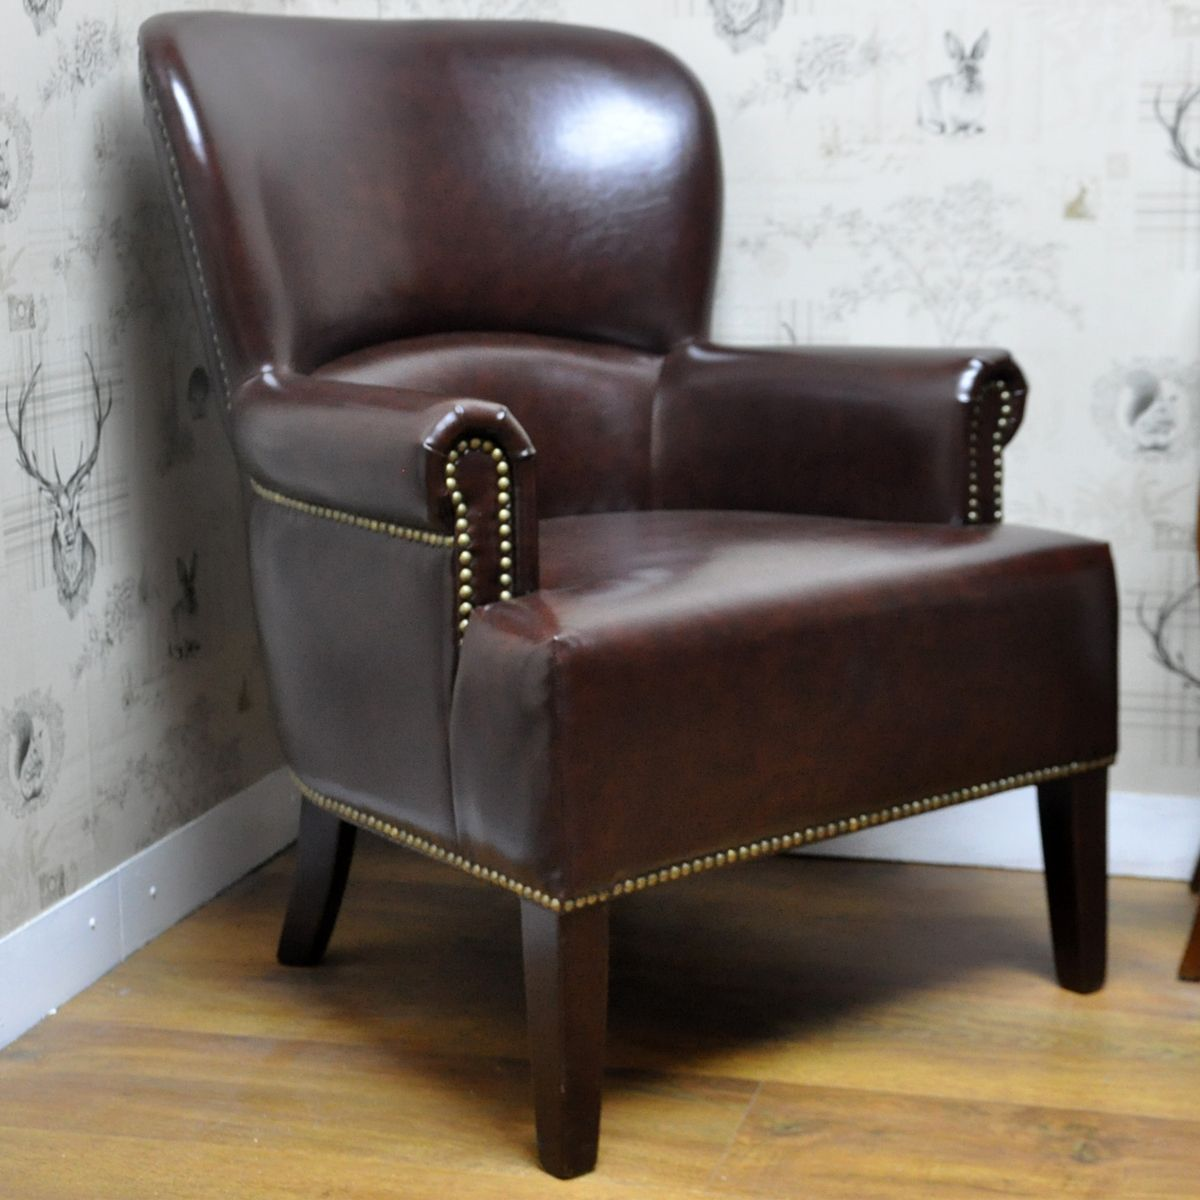 Brown Leather Studded Sofa Inflatable Bed Review Arm Chair Living Room Pinterest